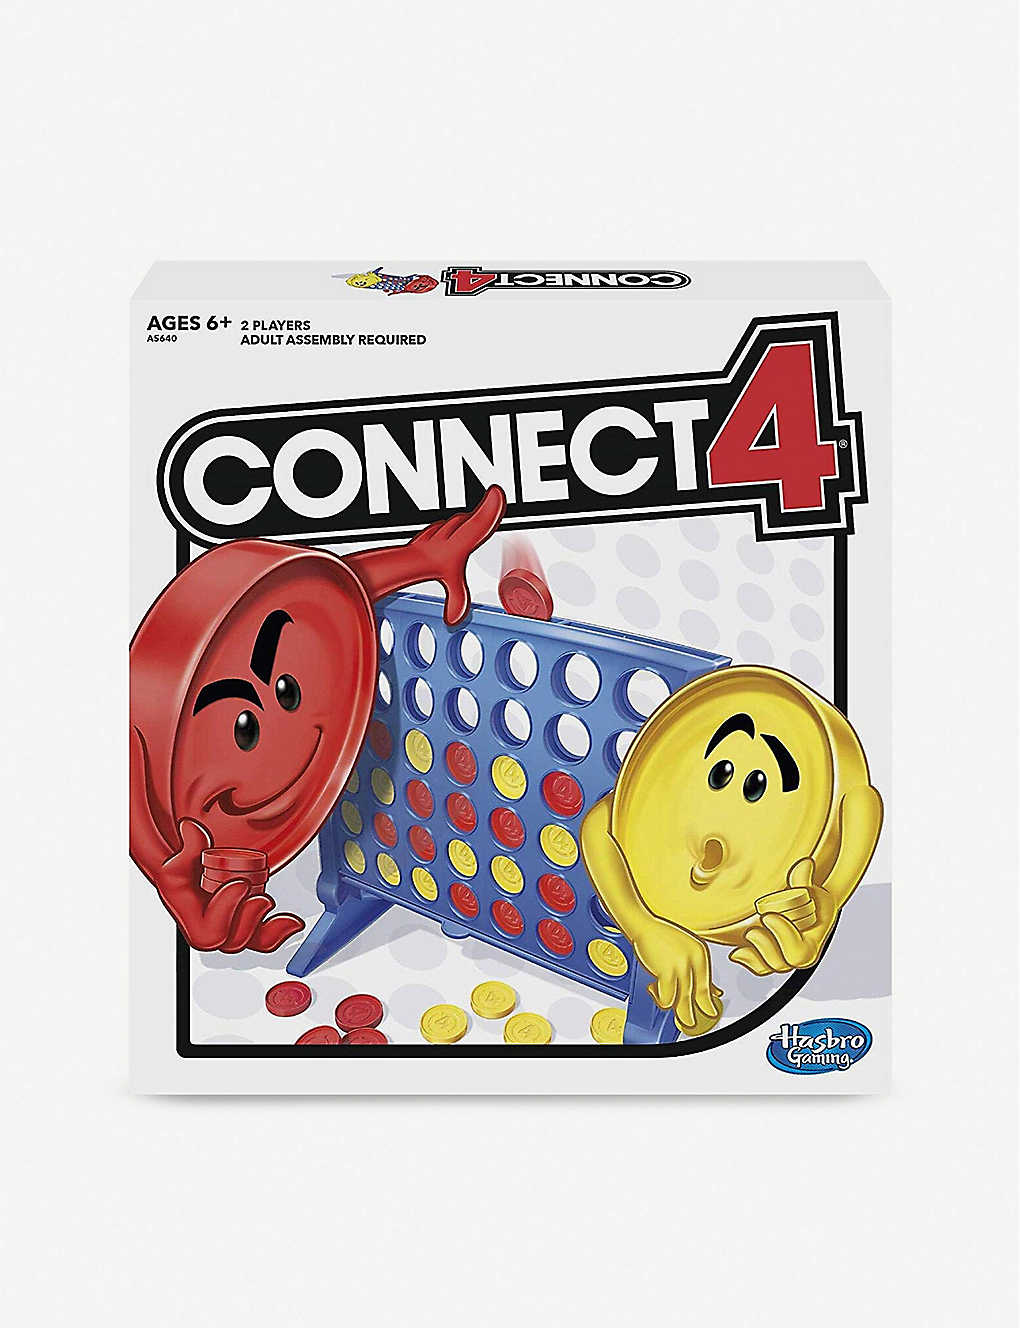 BOARD GAMES: Connect 4 Grid